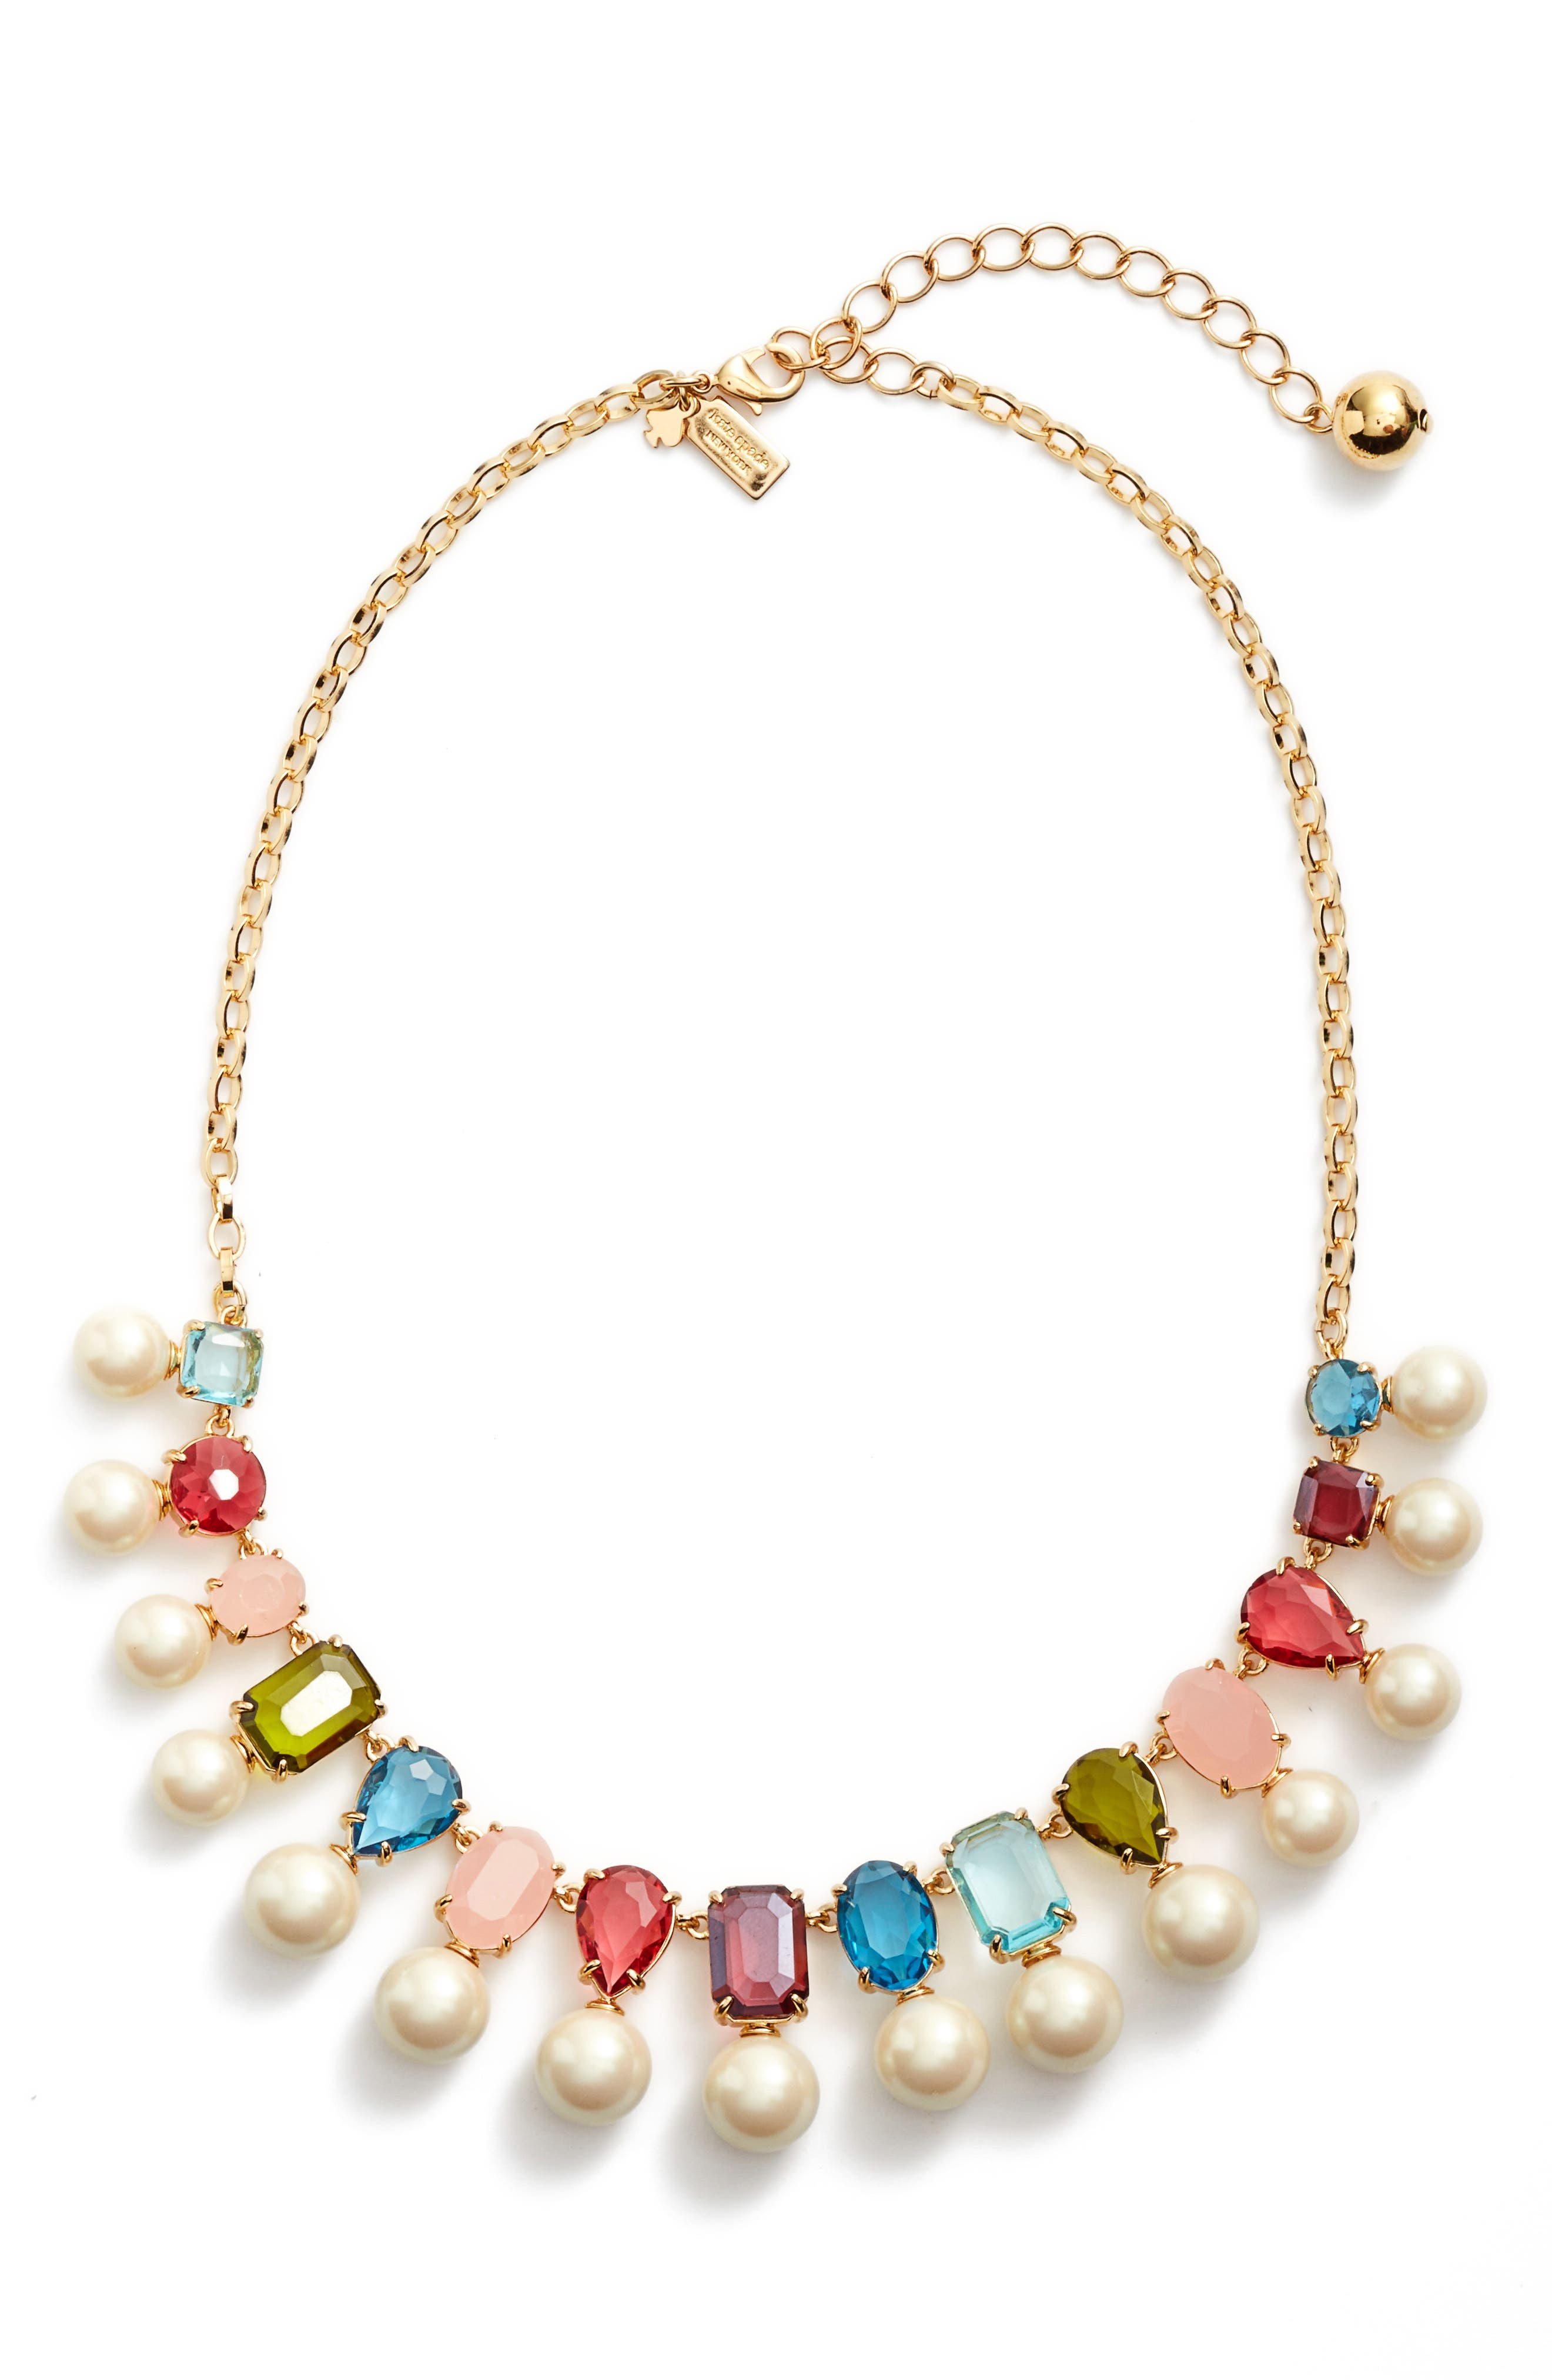 Alternate Image 1 Selected - kate spade new york a new hue collar necklace